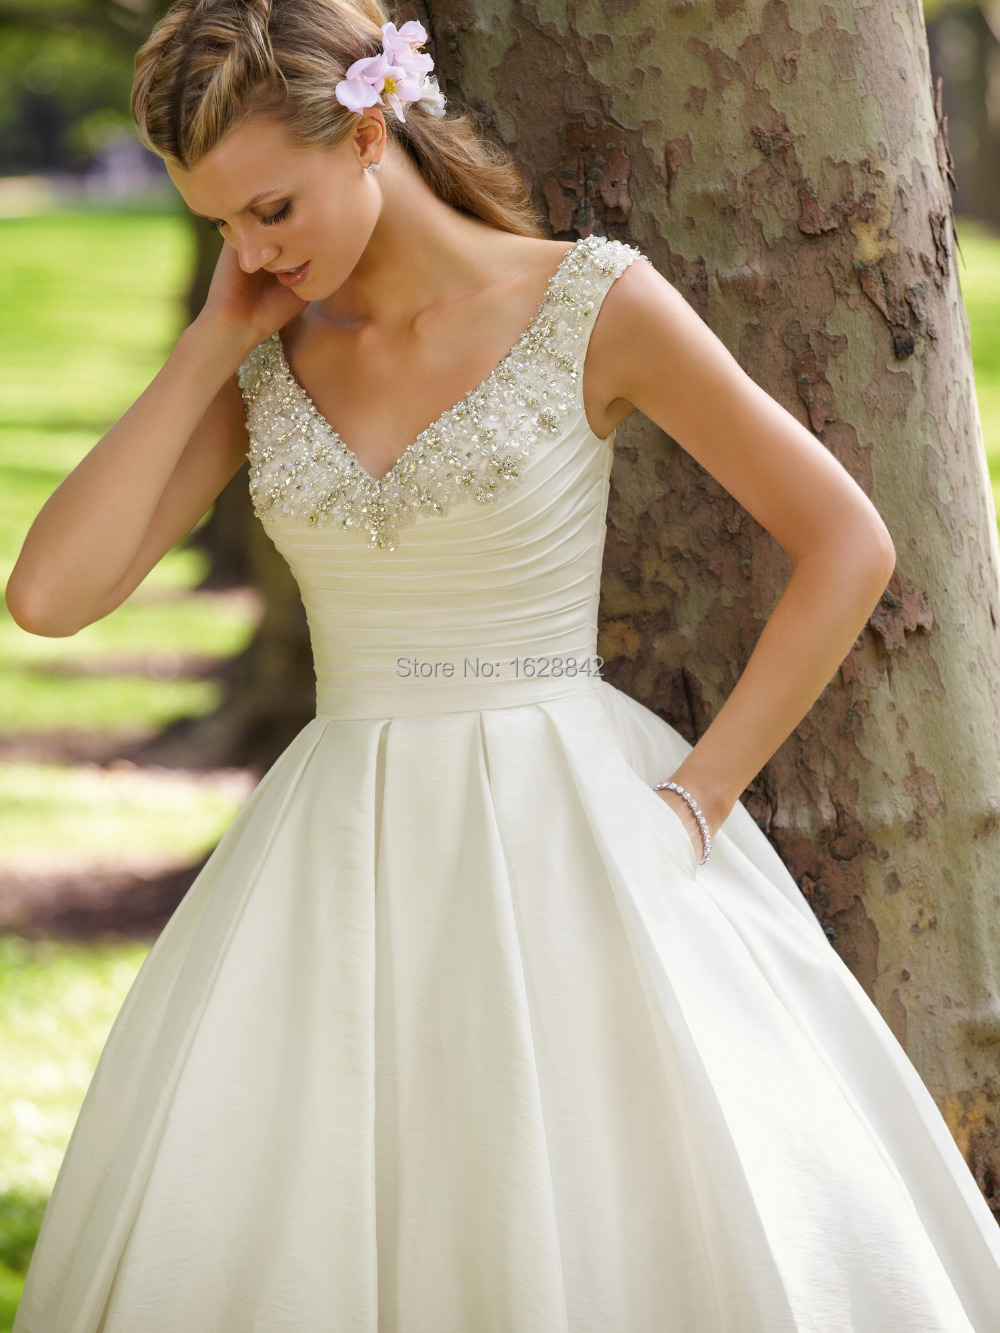 Free shipping short wedding dress robe de mariage romantic for Inexpensive short wedding dresses